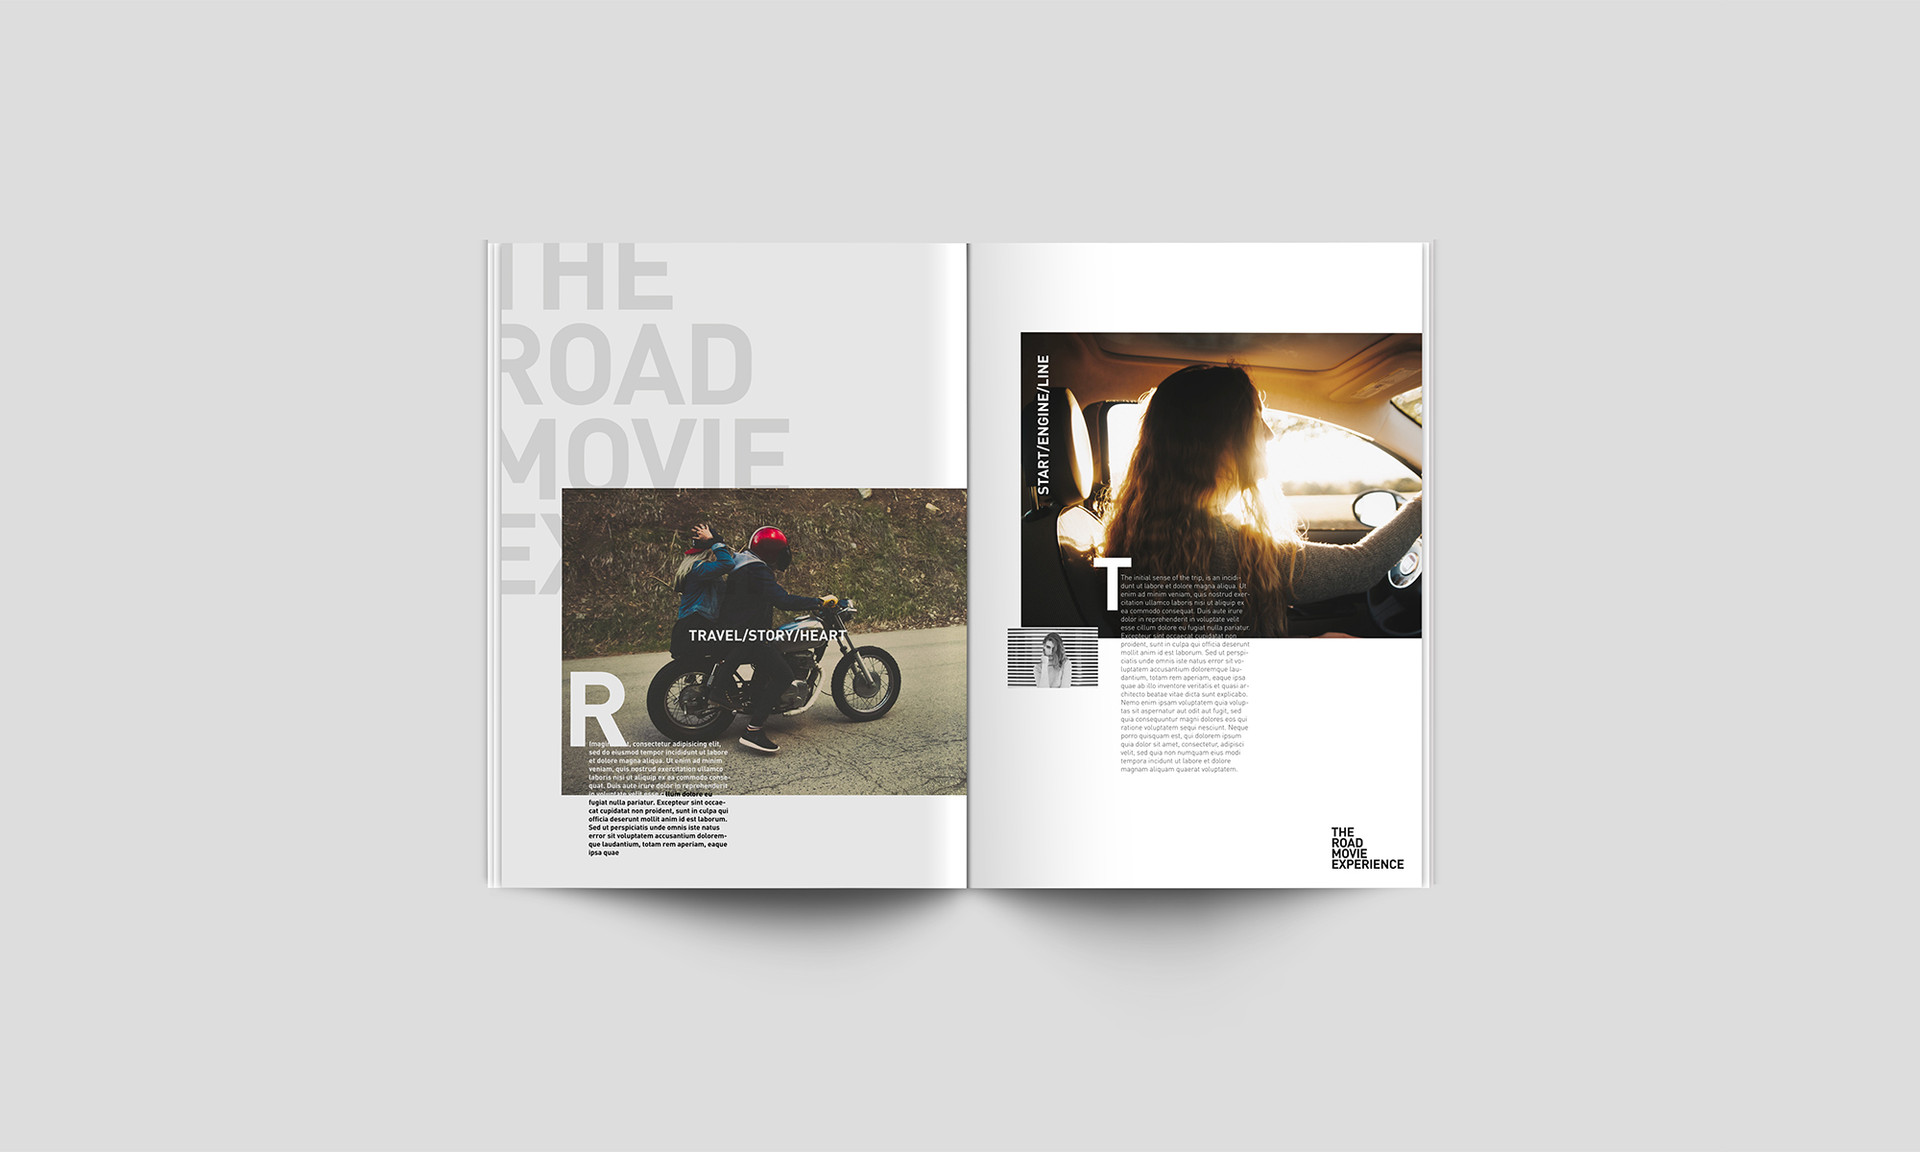 the-road-movie-spread2.jpg